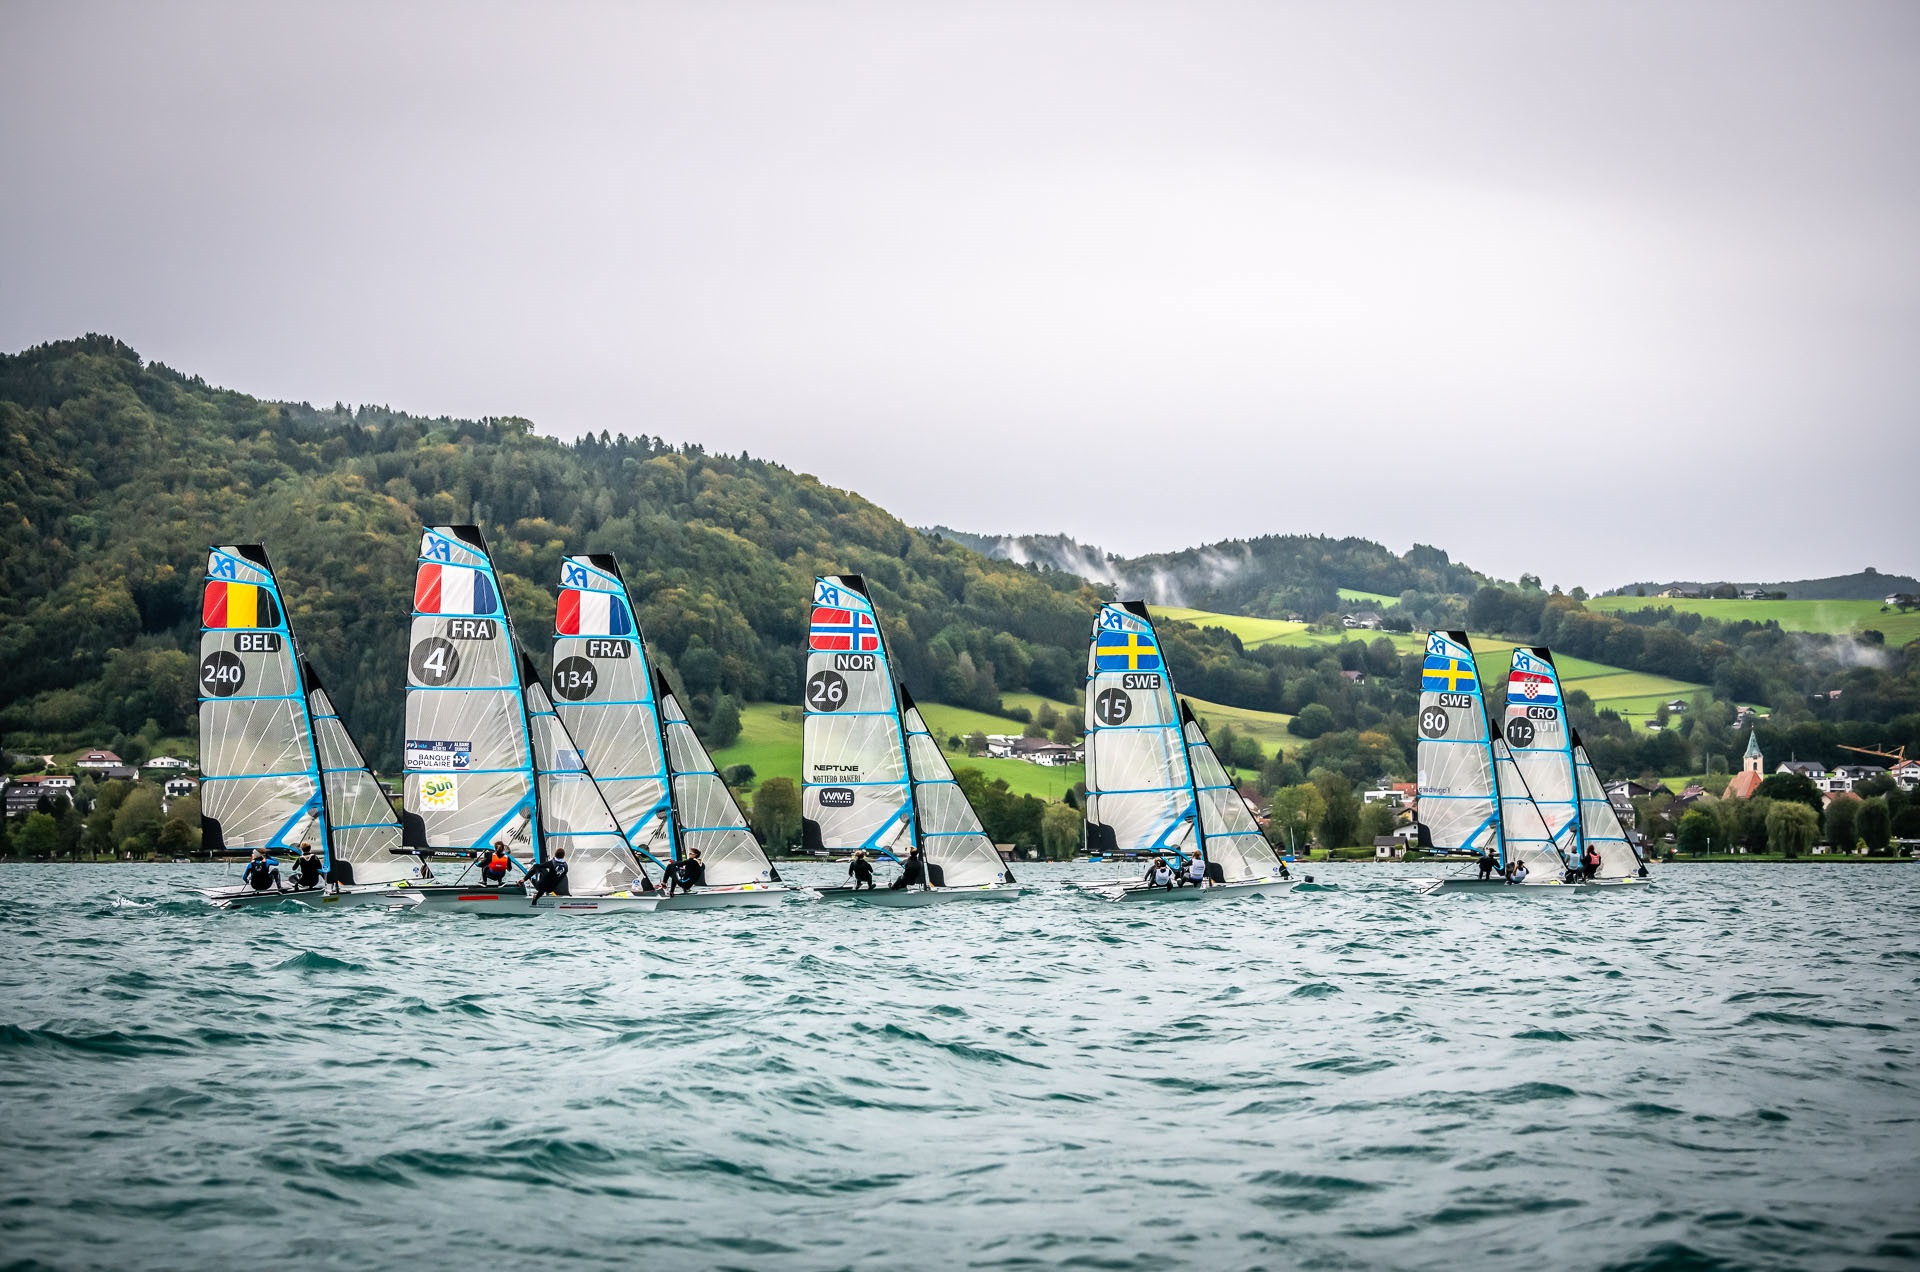 Weather conditions on Lake Attersee meant there was no racing in the 49erFX and Nacra 17 contests ©Tobias Stoerkle Photography